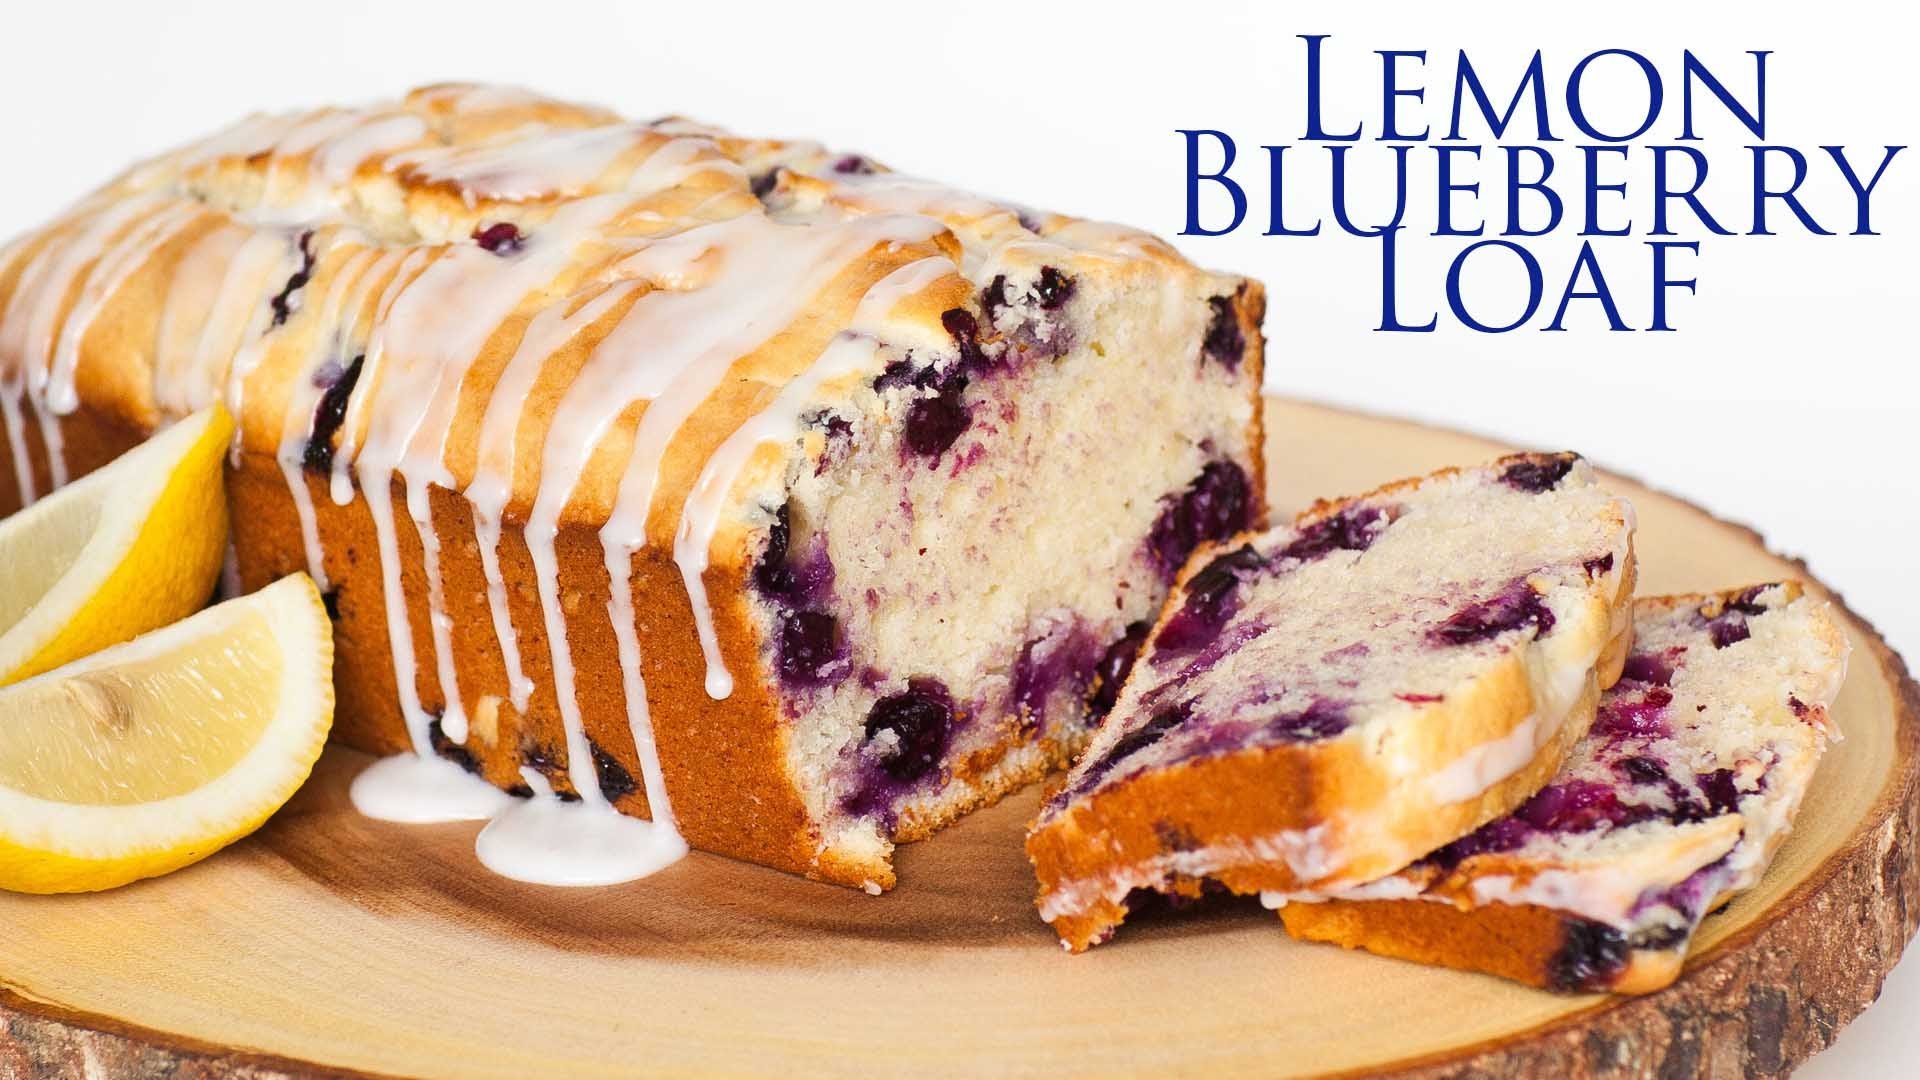 This Lemon Blueberry Loaf Has The Easiest Icing Ever, What Do You Think?